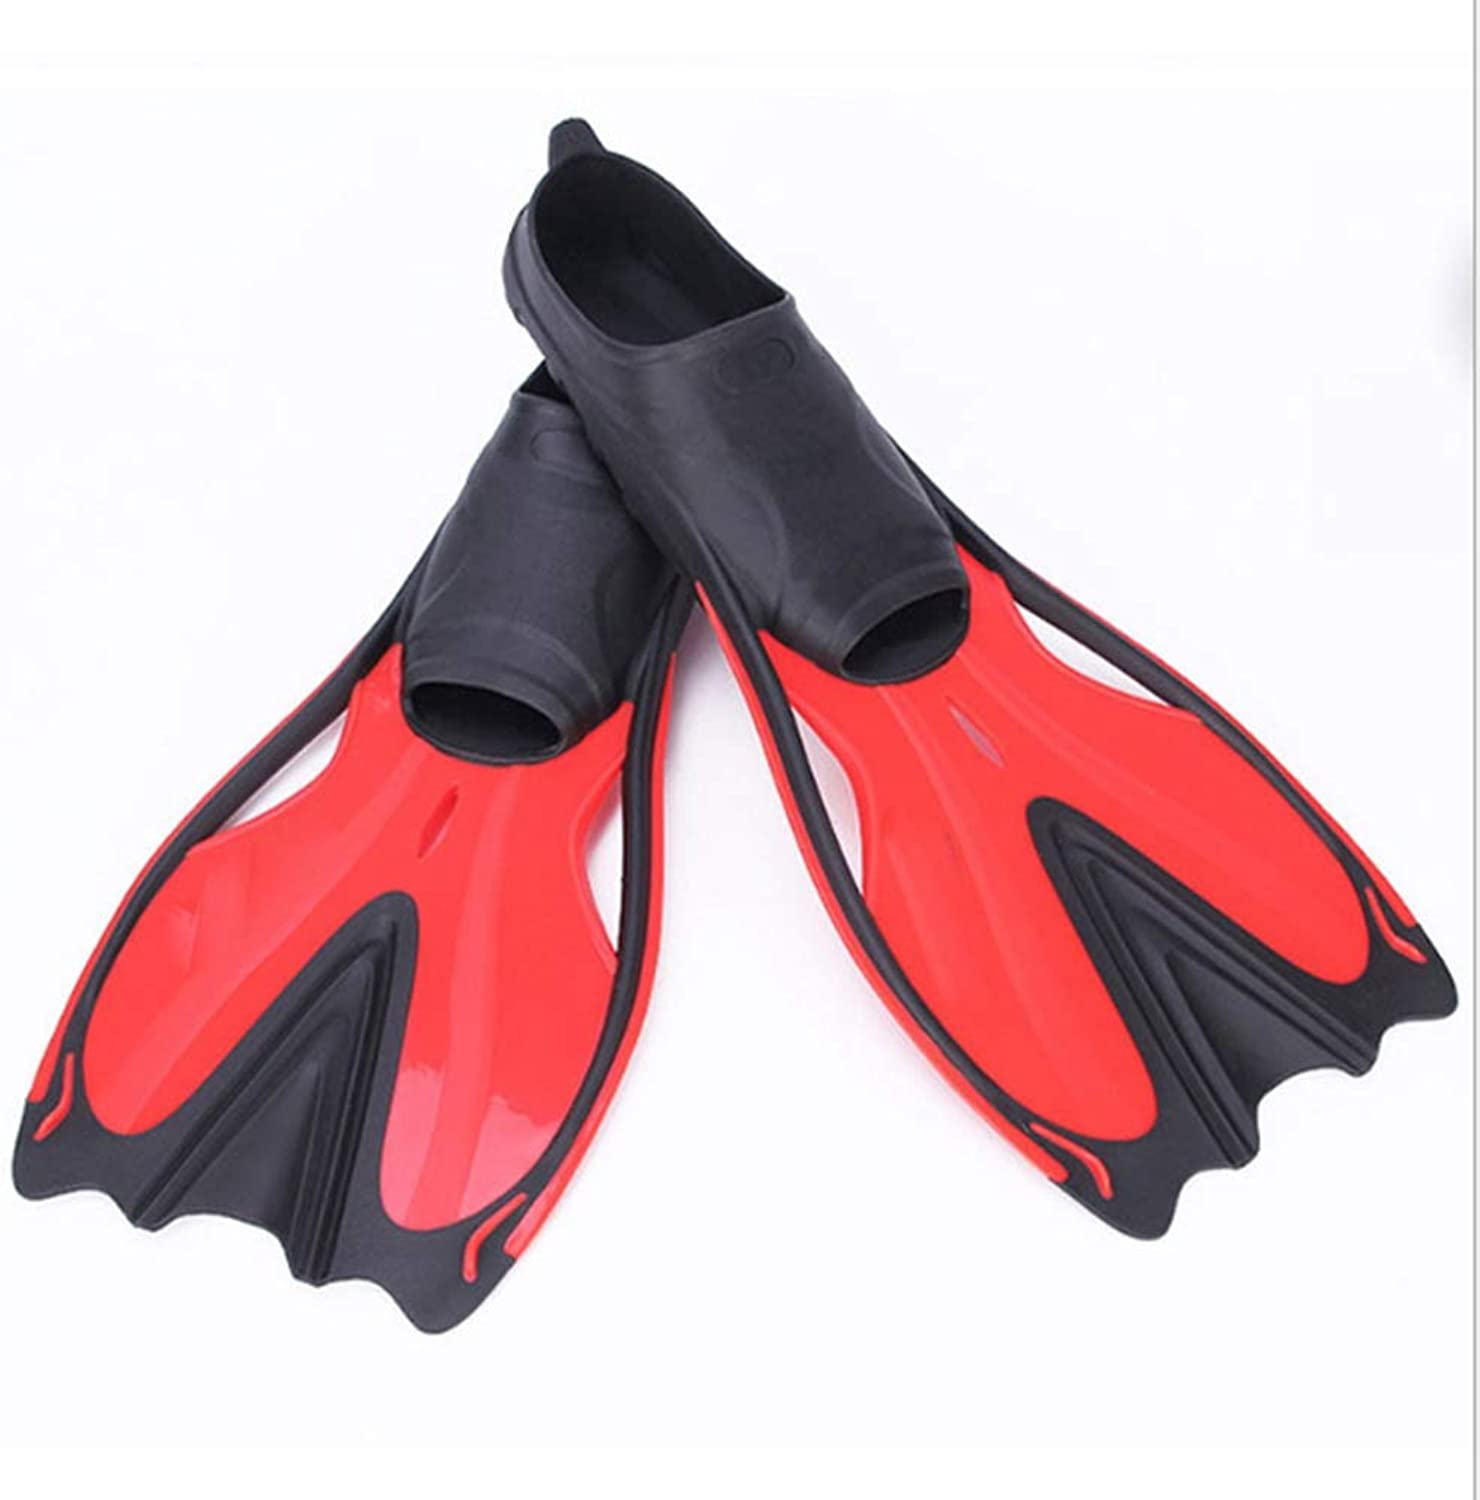 Universal Swim Fins Short Floating Training Fins for Kids and Adults Thermoplastic Rubber Pool Fins for Swimming Diving Snorkeling Watersports